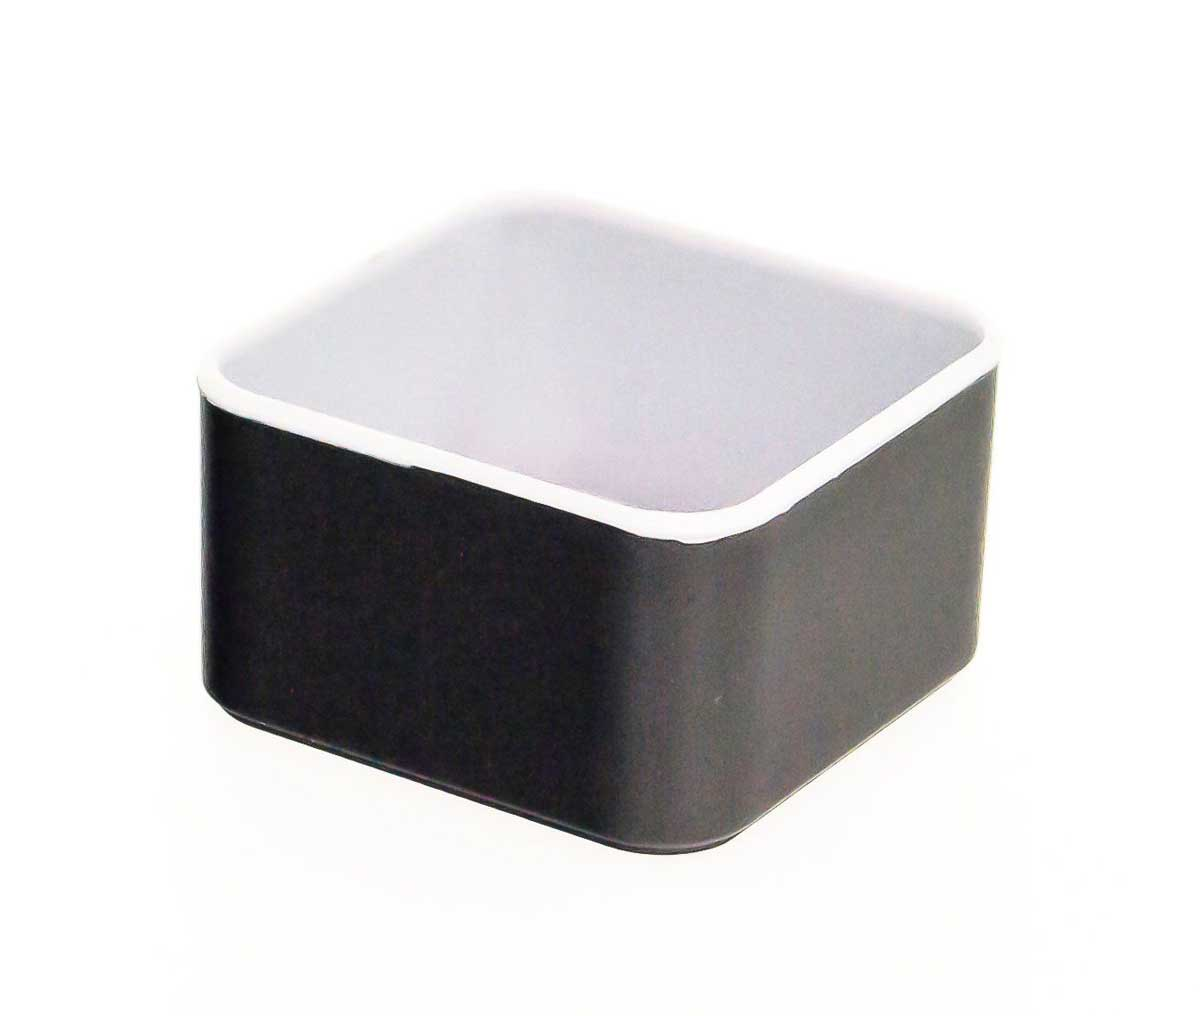 Set of 5 Plastic Drawer Office Desk Organiser Box